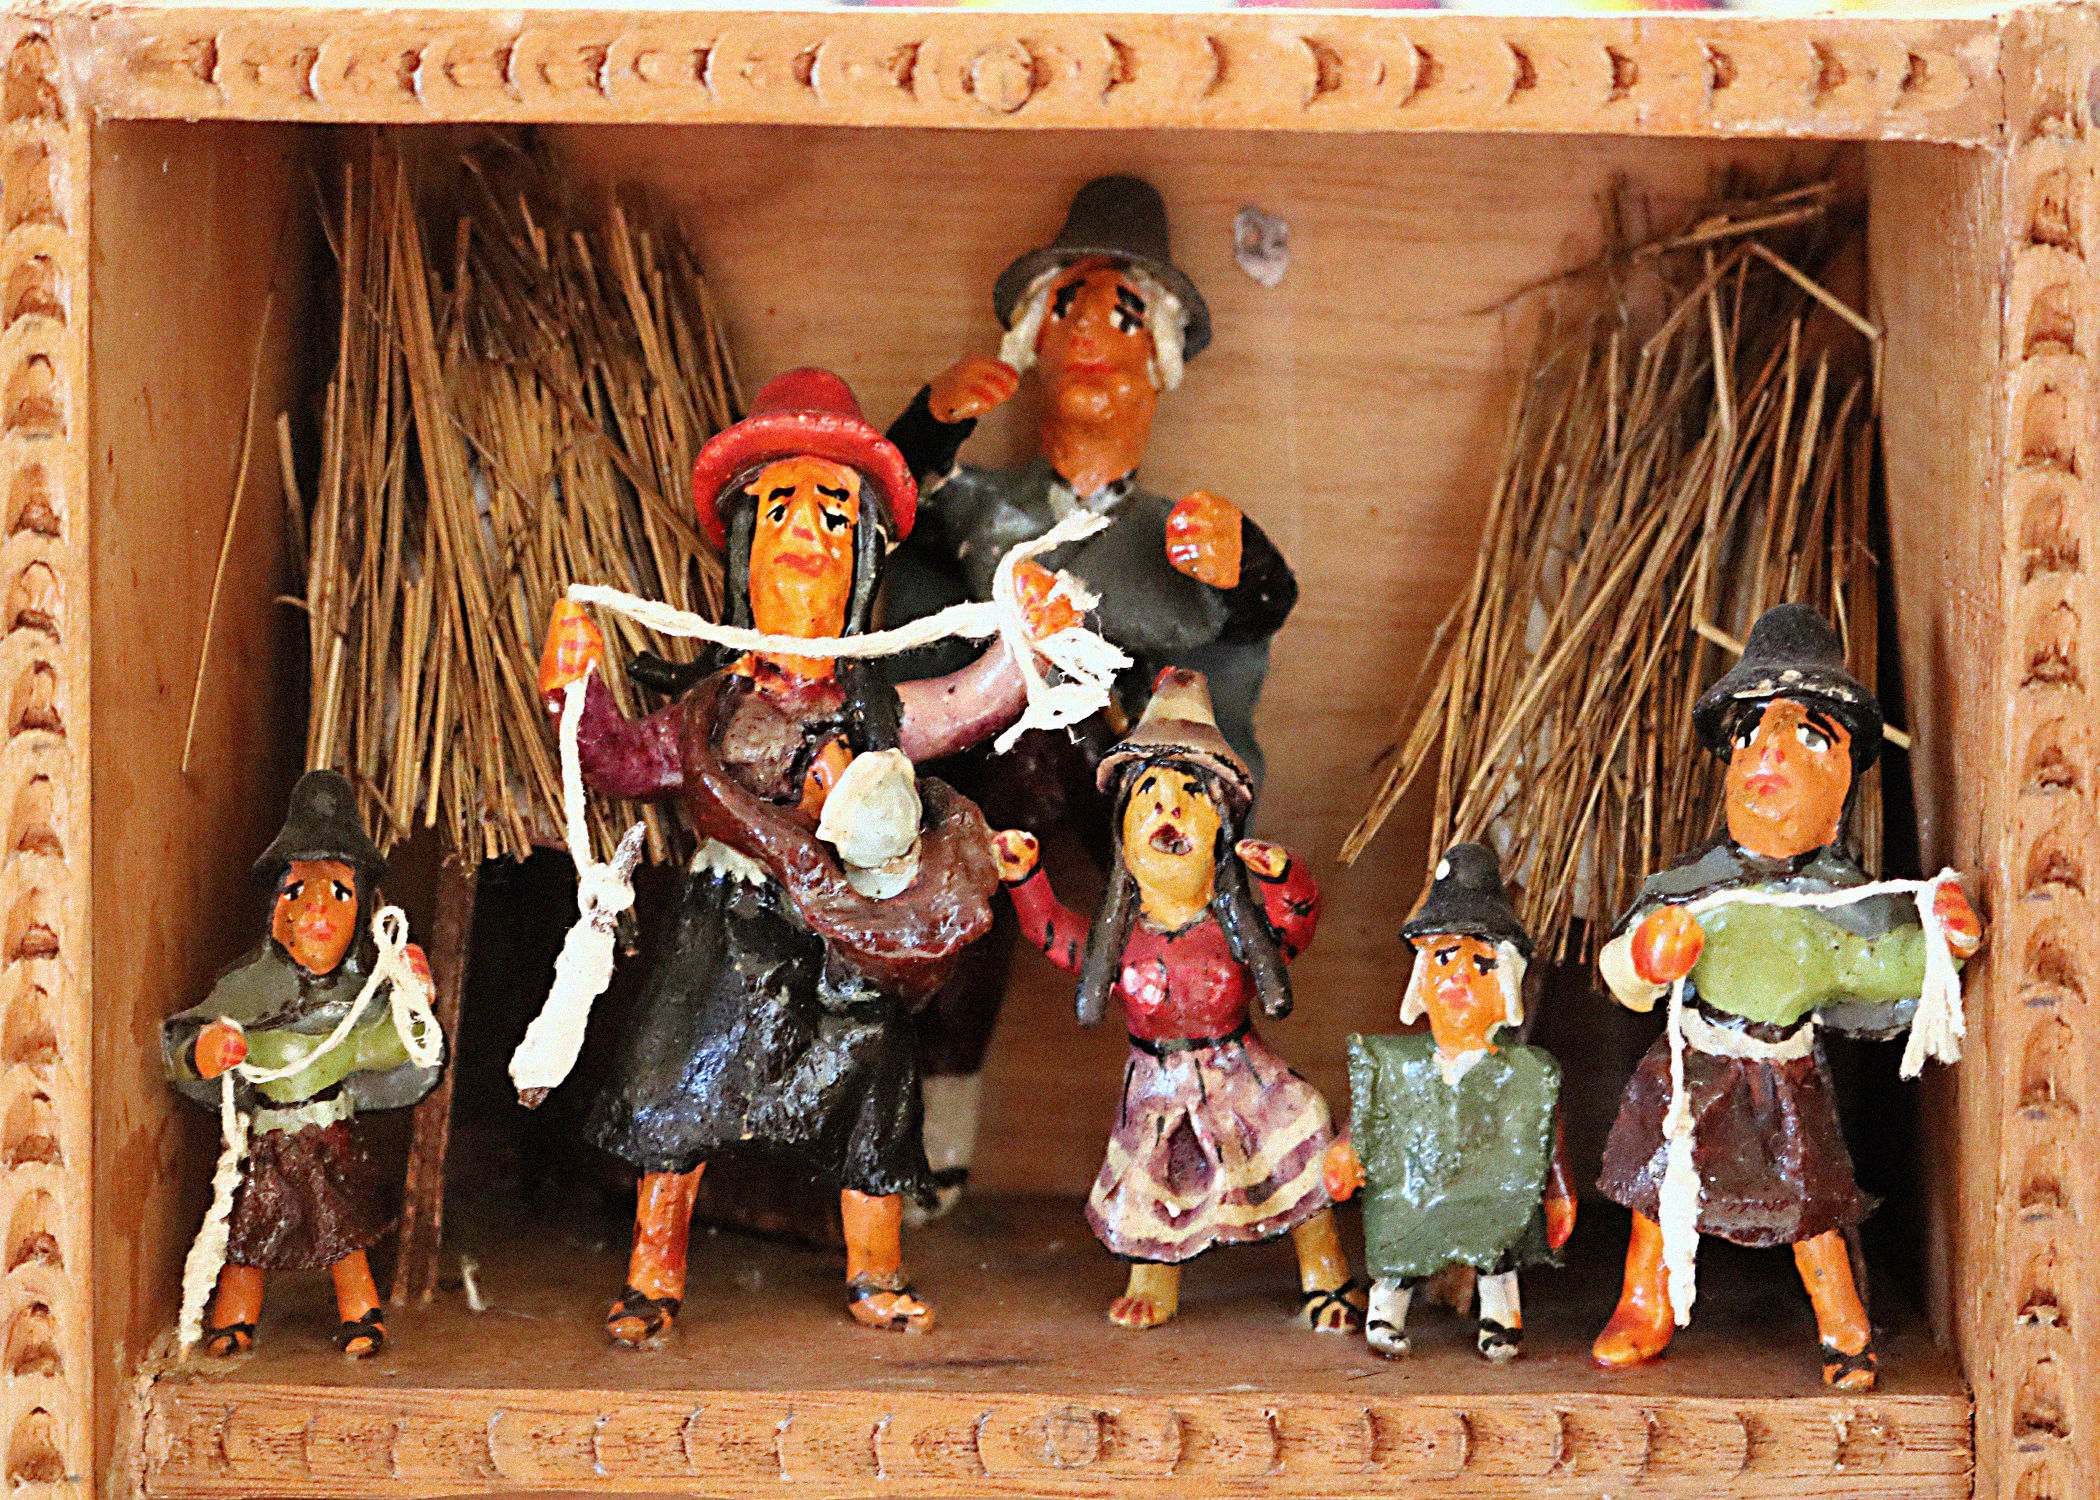 A scene called The Uchuraccaynos within a retablo. The scene portray a family of humanlike figurines. There are two, taller adults and four shorter children. There is also a baby strapped to one of the adults. One of the adults and two children hold white ropes. There are looks of anguish and sadness of all of their faces. The figurines stand between two structures with straw roofs.